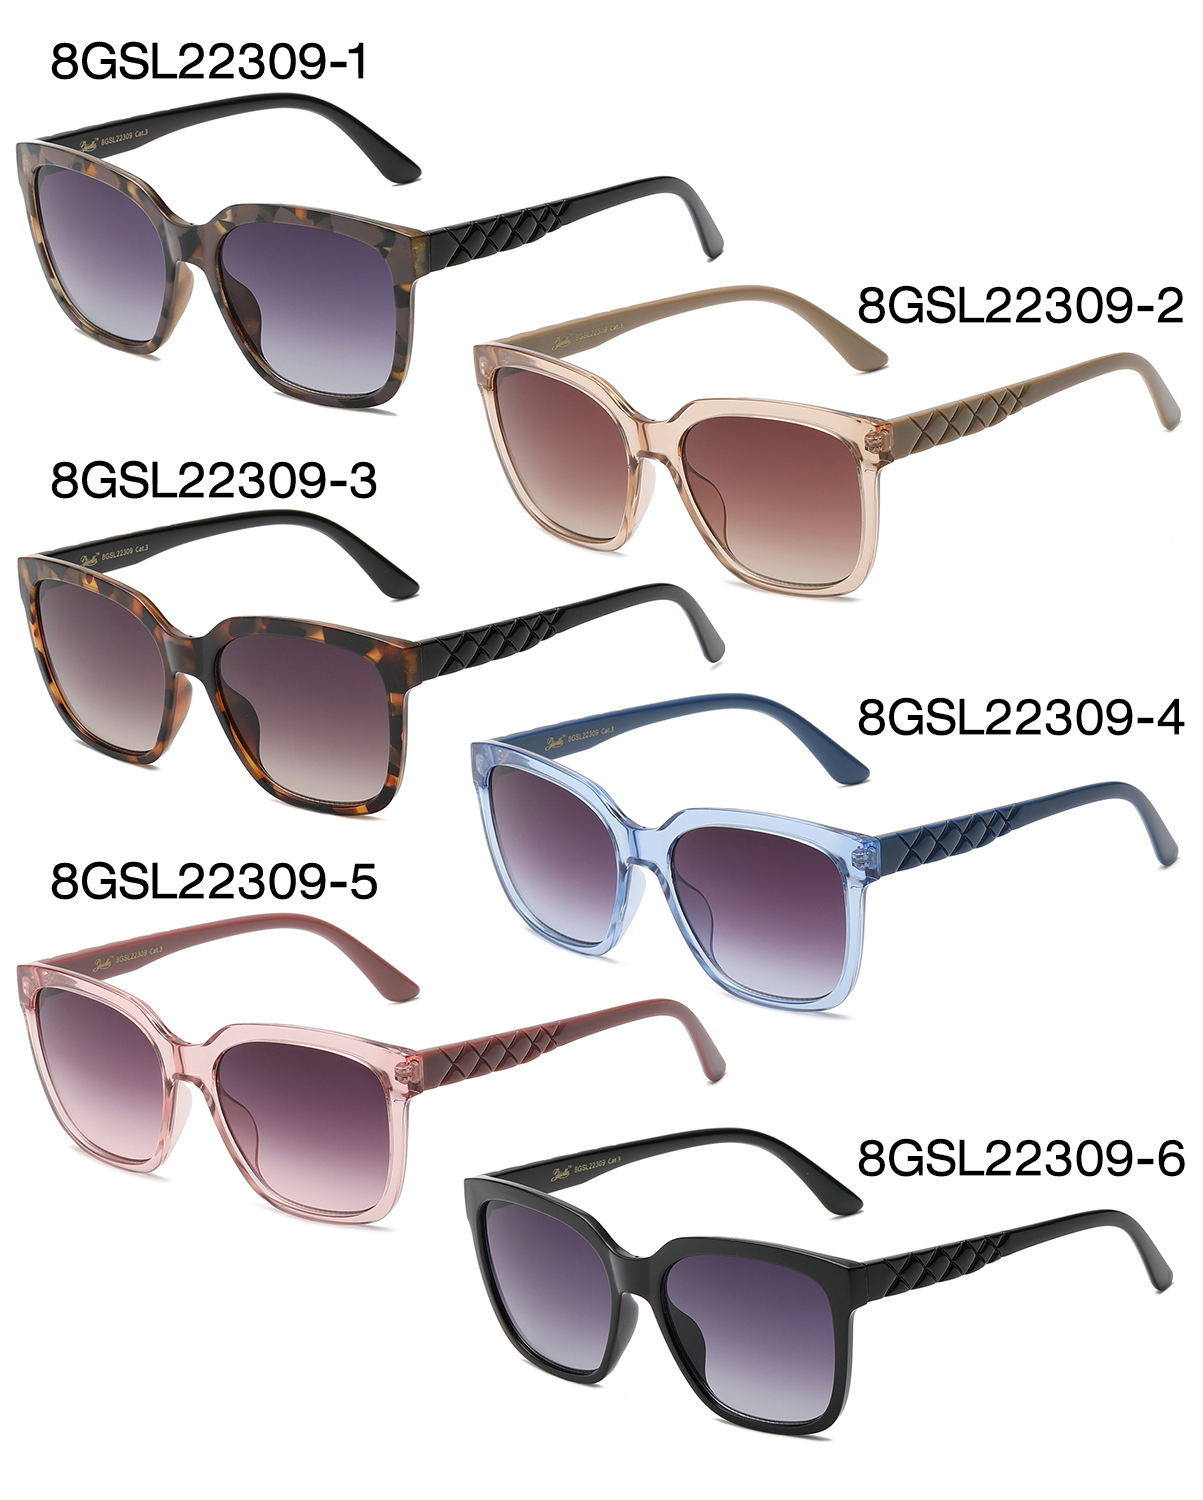 8GSL22309-(SET-12PCS)-wholesale-metal-temple-sunglasses-round-solid-plastic-frame-uva-uvb-colored-lenses-tortoise-diamond(0).jpg